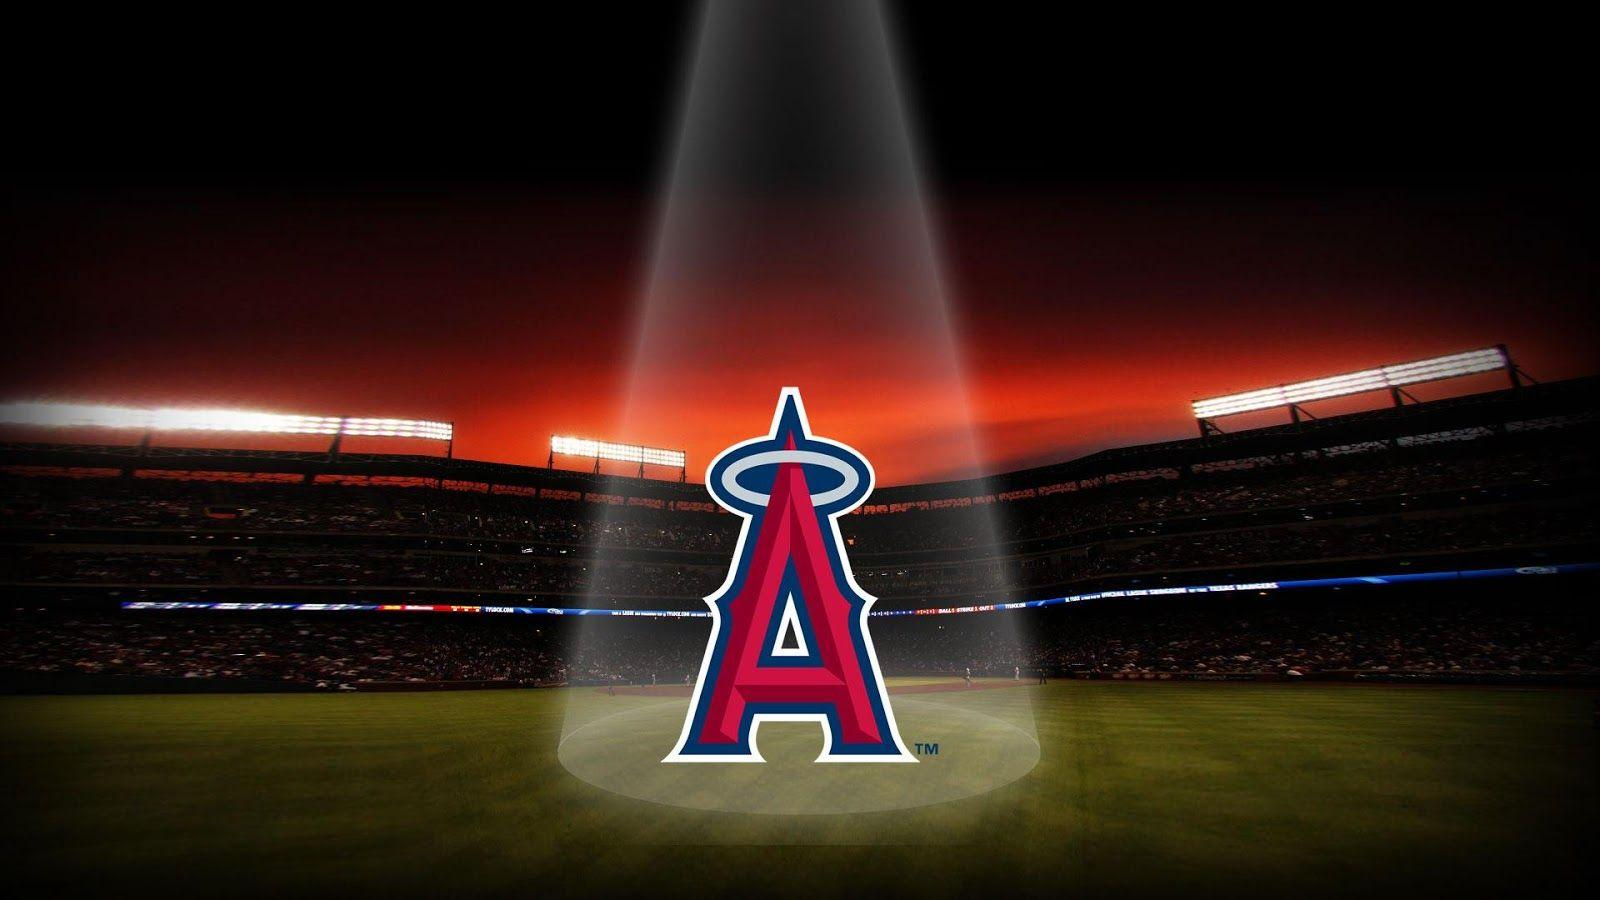 1600x900 - Los Angeles Angels of Anaheim Wallpapers 15